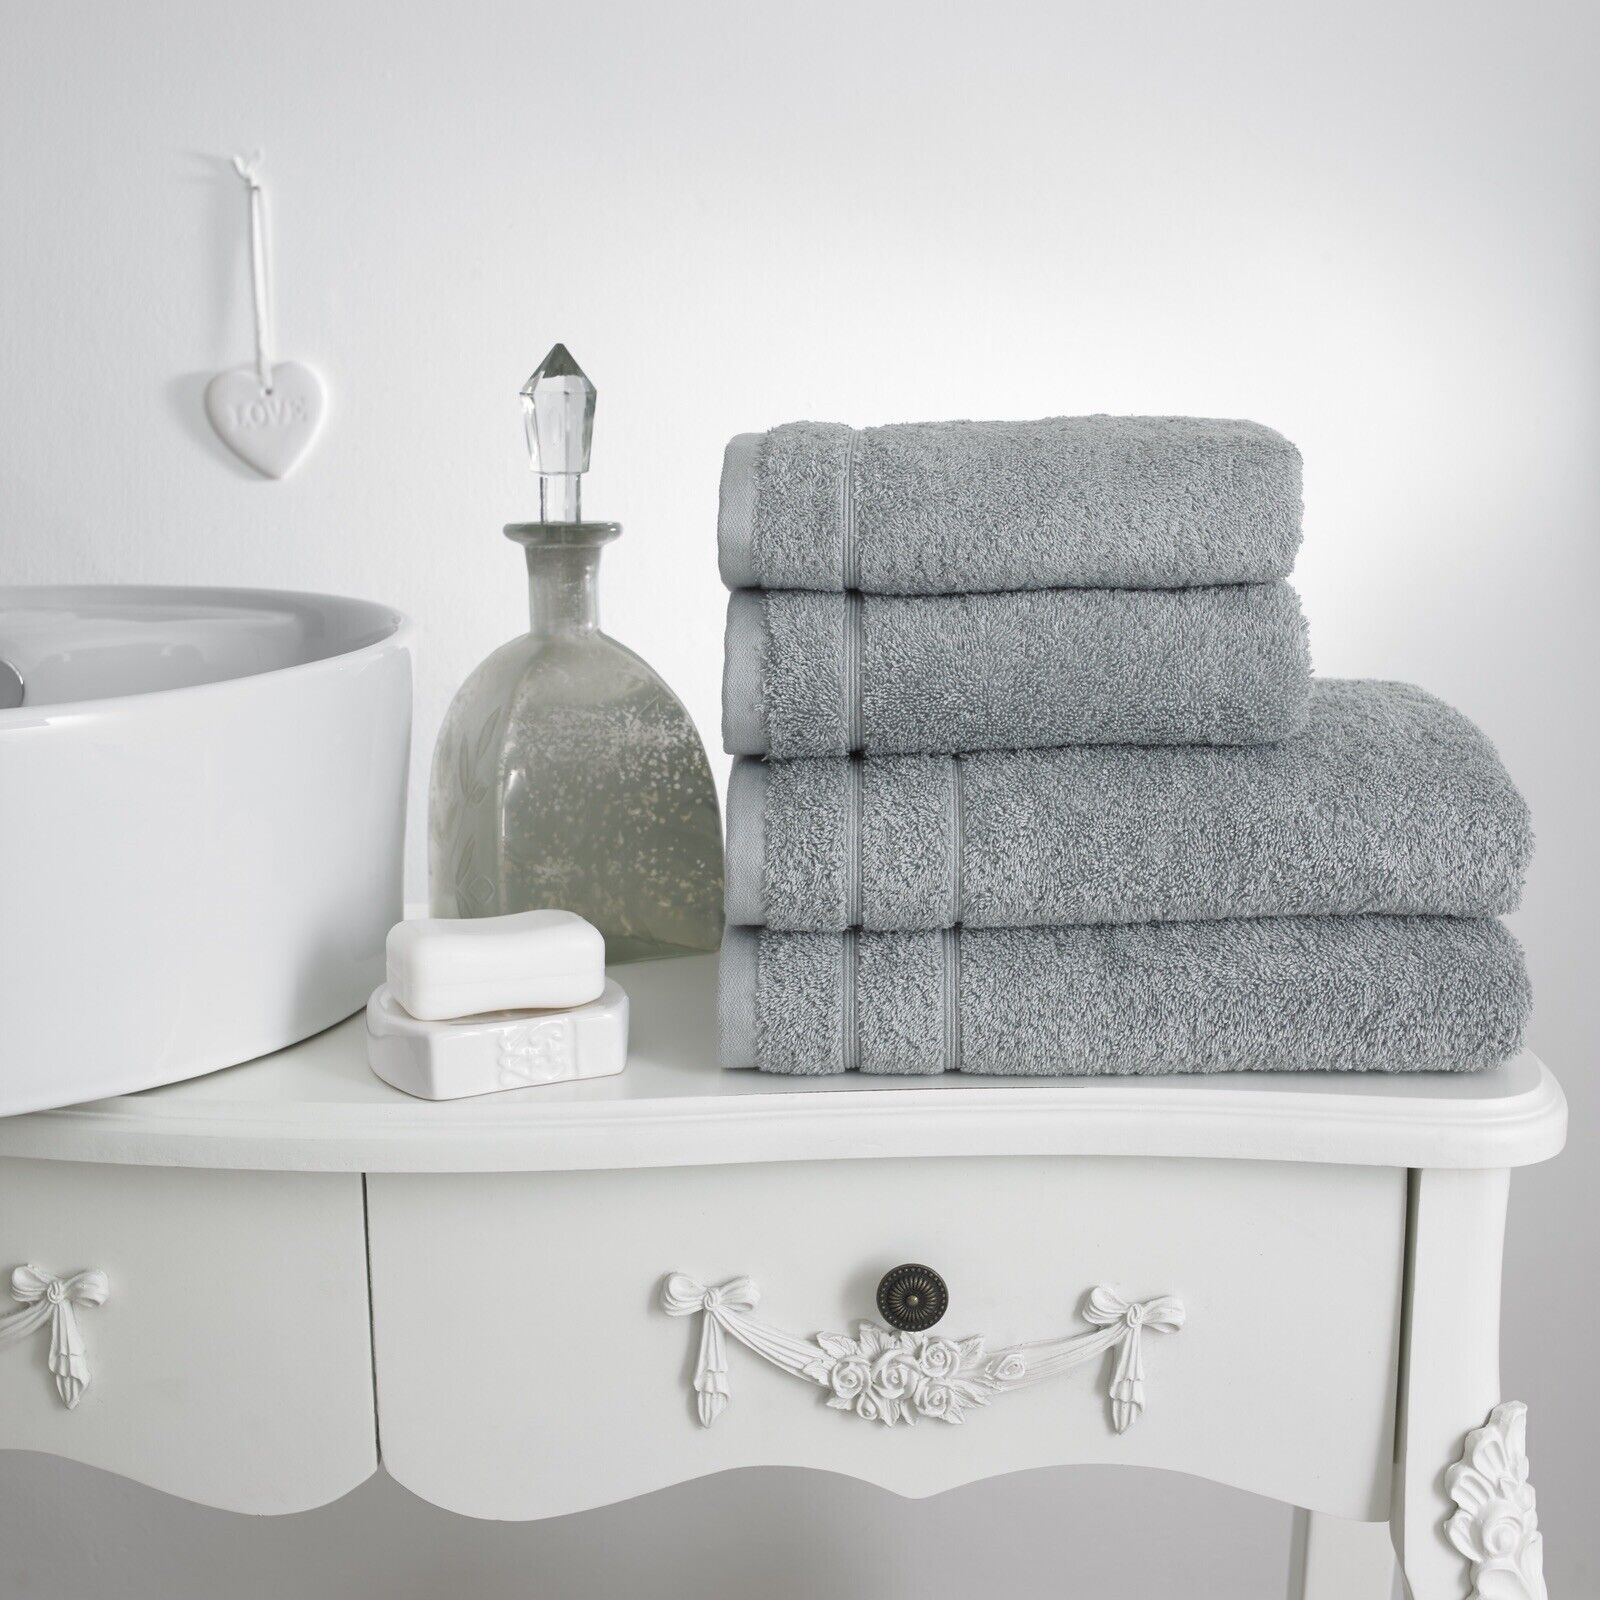 1 Pair Of Luxury Hand Towels 600gsm Combed Cotton Towels